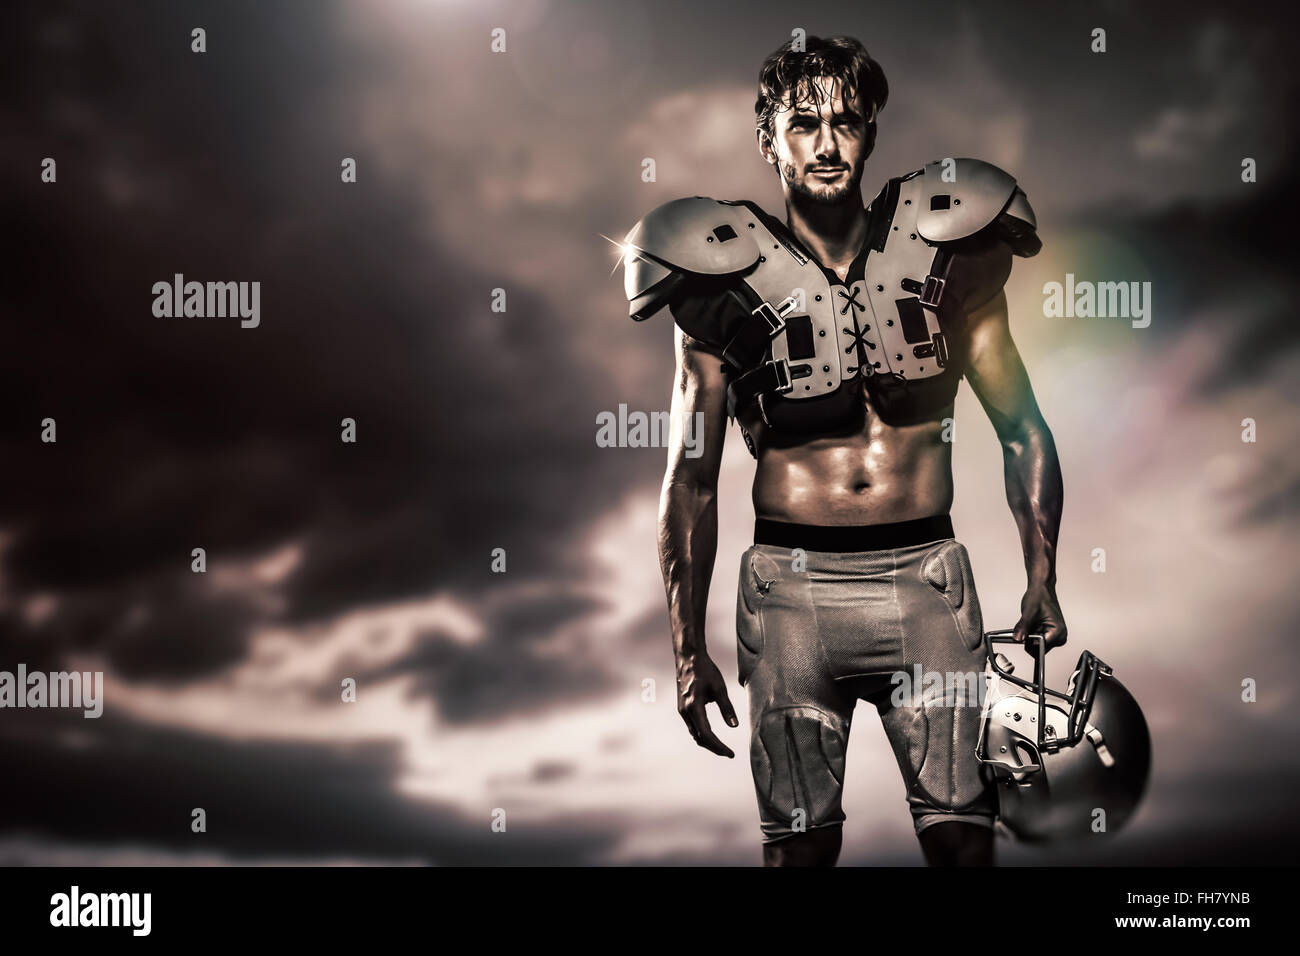 Composite image of shirtless american football player with padding holding helmet - Stock Image